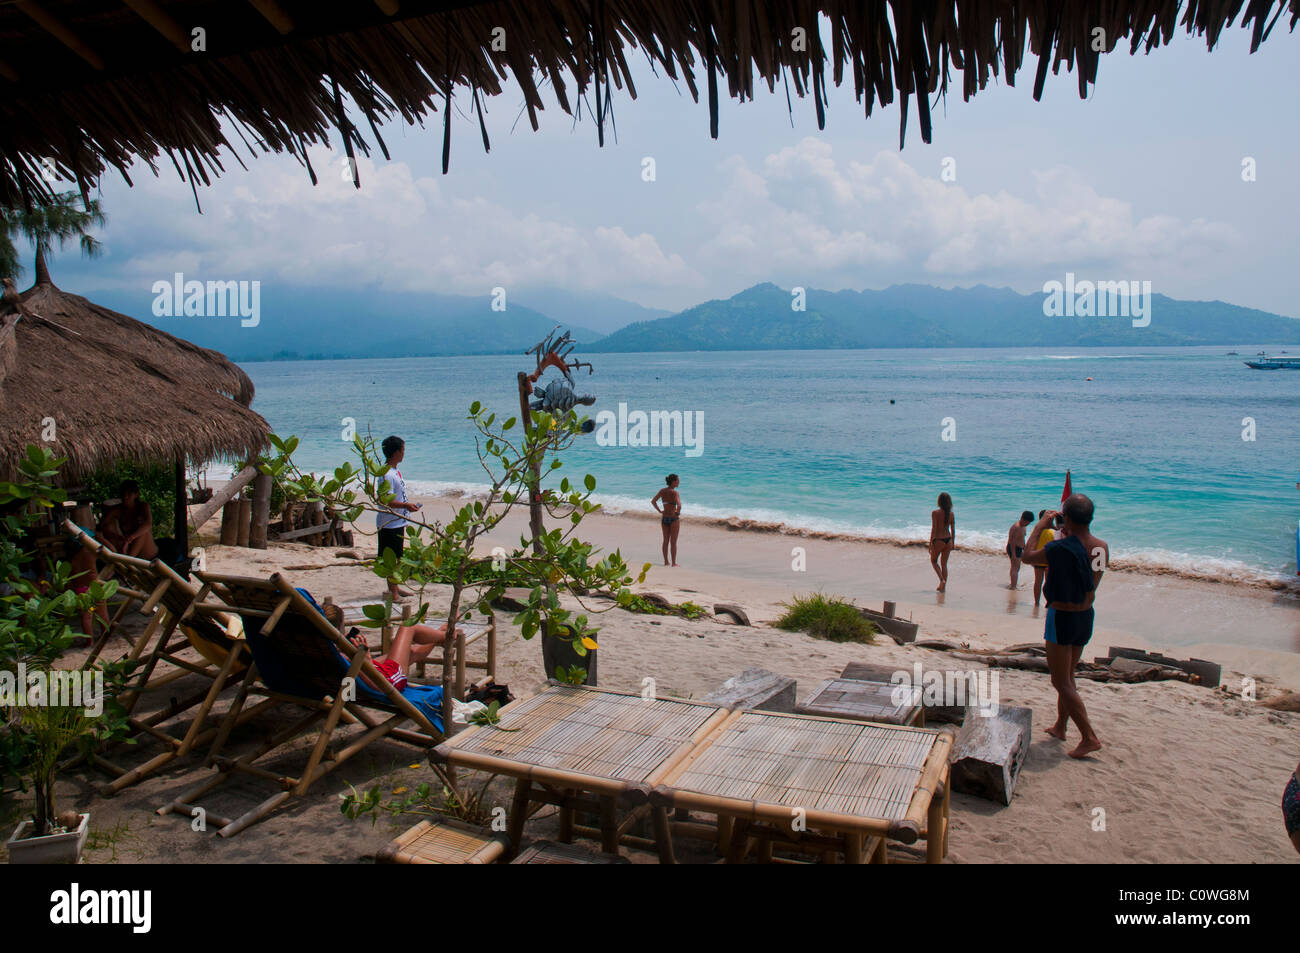 Beach at Gili Air the smallest island of the Gili group off Lombok Indonesia - Stock Image